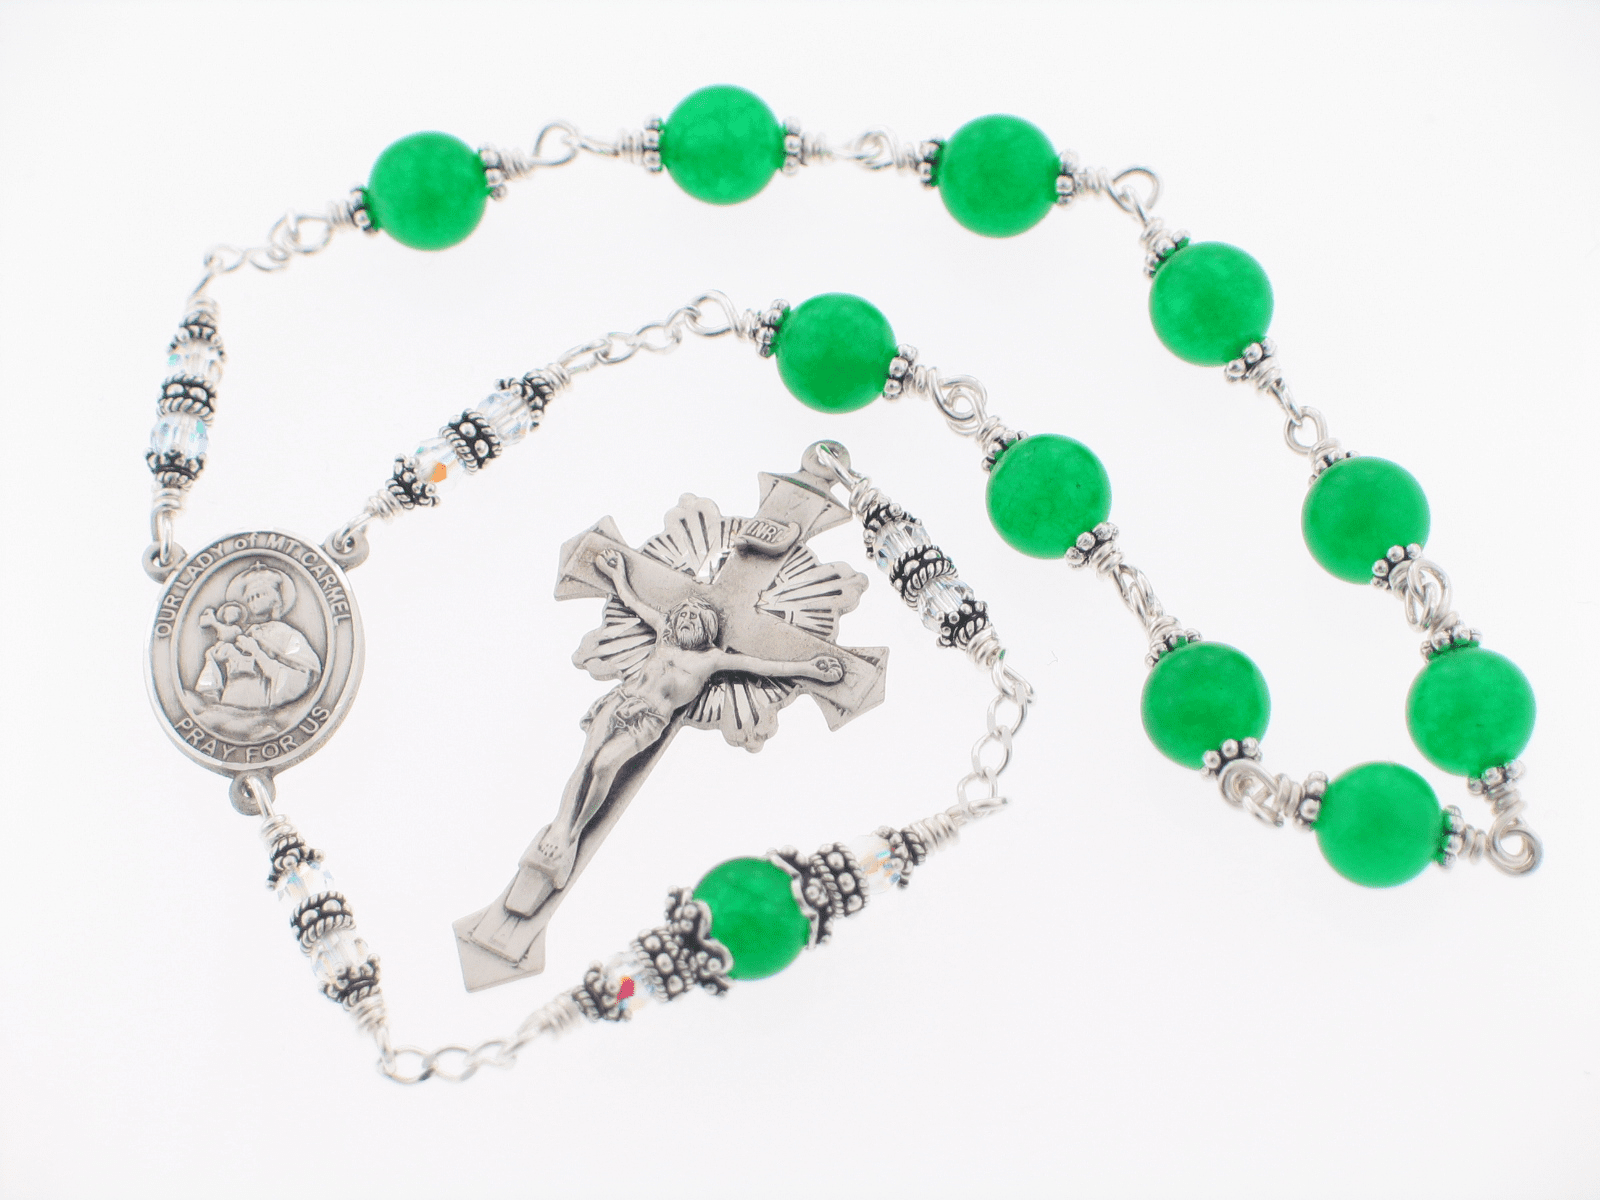 Handmade Green Jade Sterling Silver Our Lady of Mount Carmel Pocket Rosary by Heavenly Divine